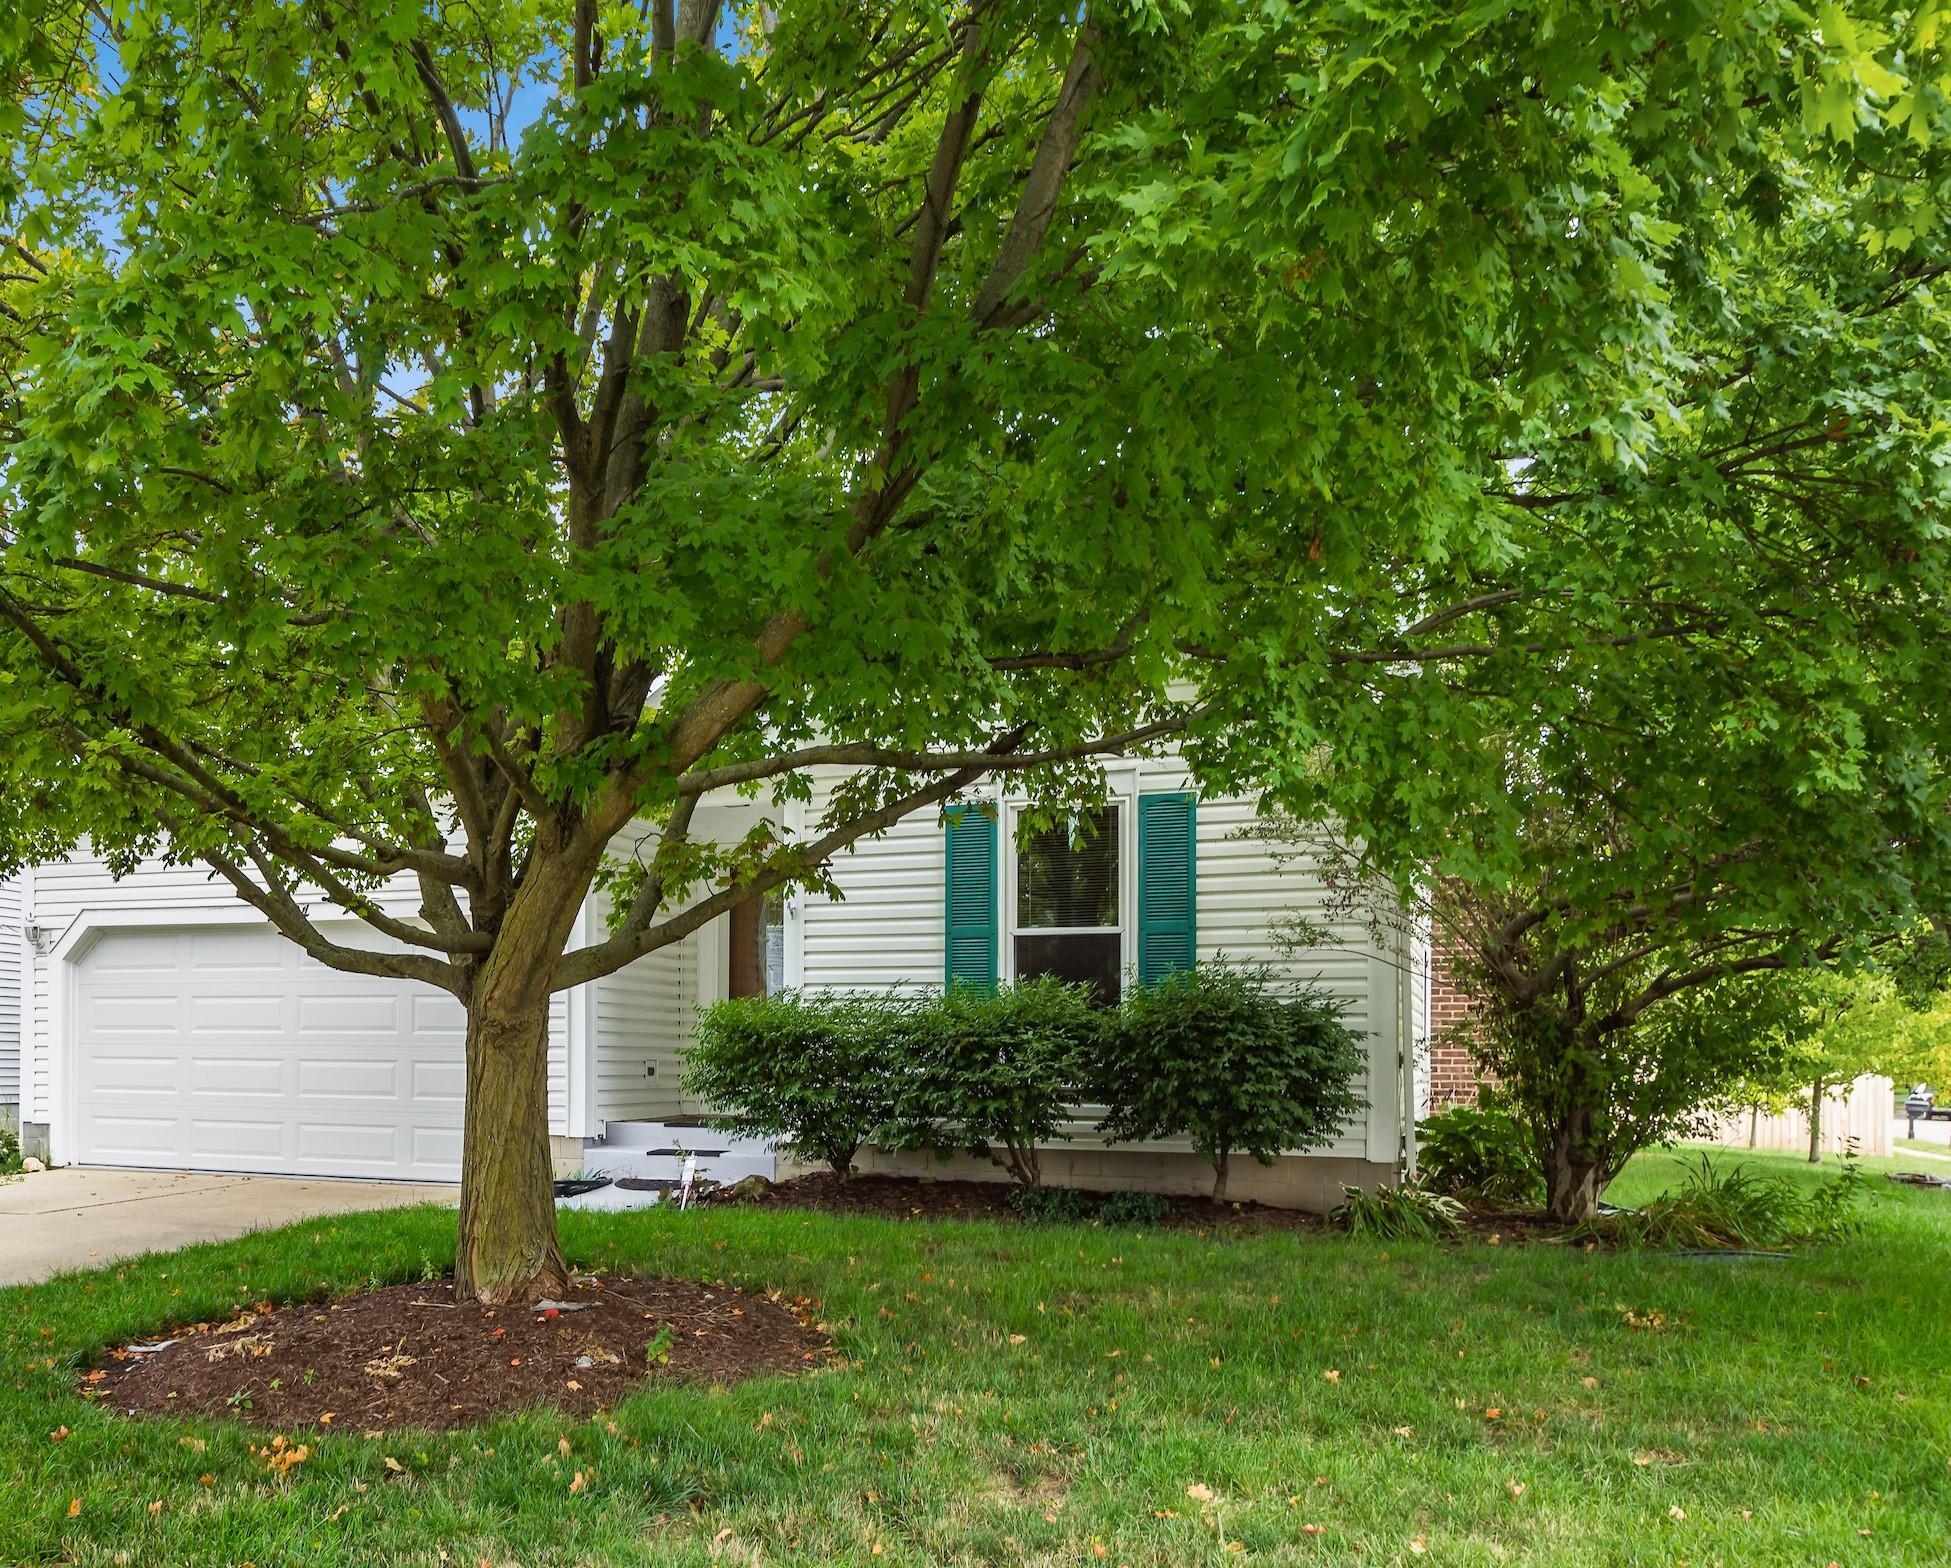 2754 Lyndley Court, Hilliard, Ohio 43026, 3 Bedrooms Bedrooms, ,2 BathroomsBathrooms,Residential,For Sale,Lyndley,220032186